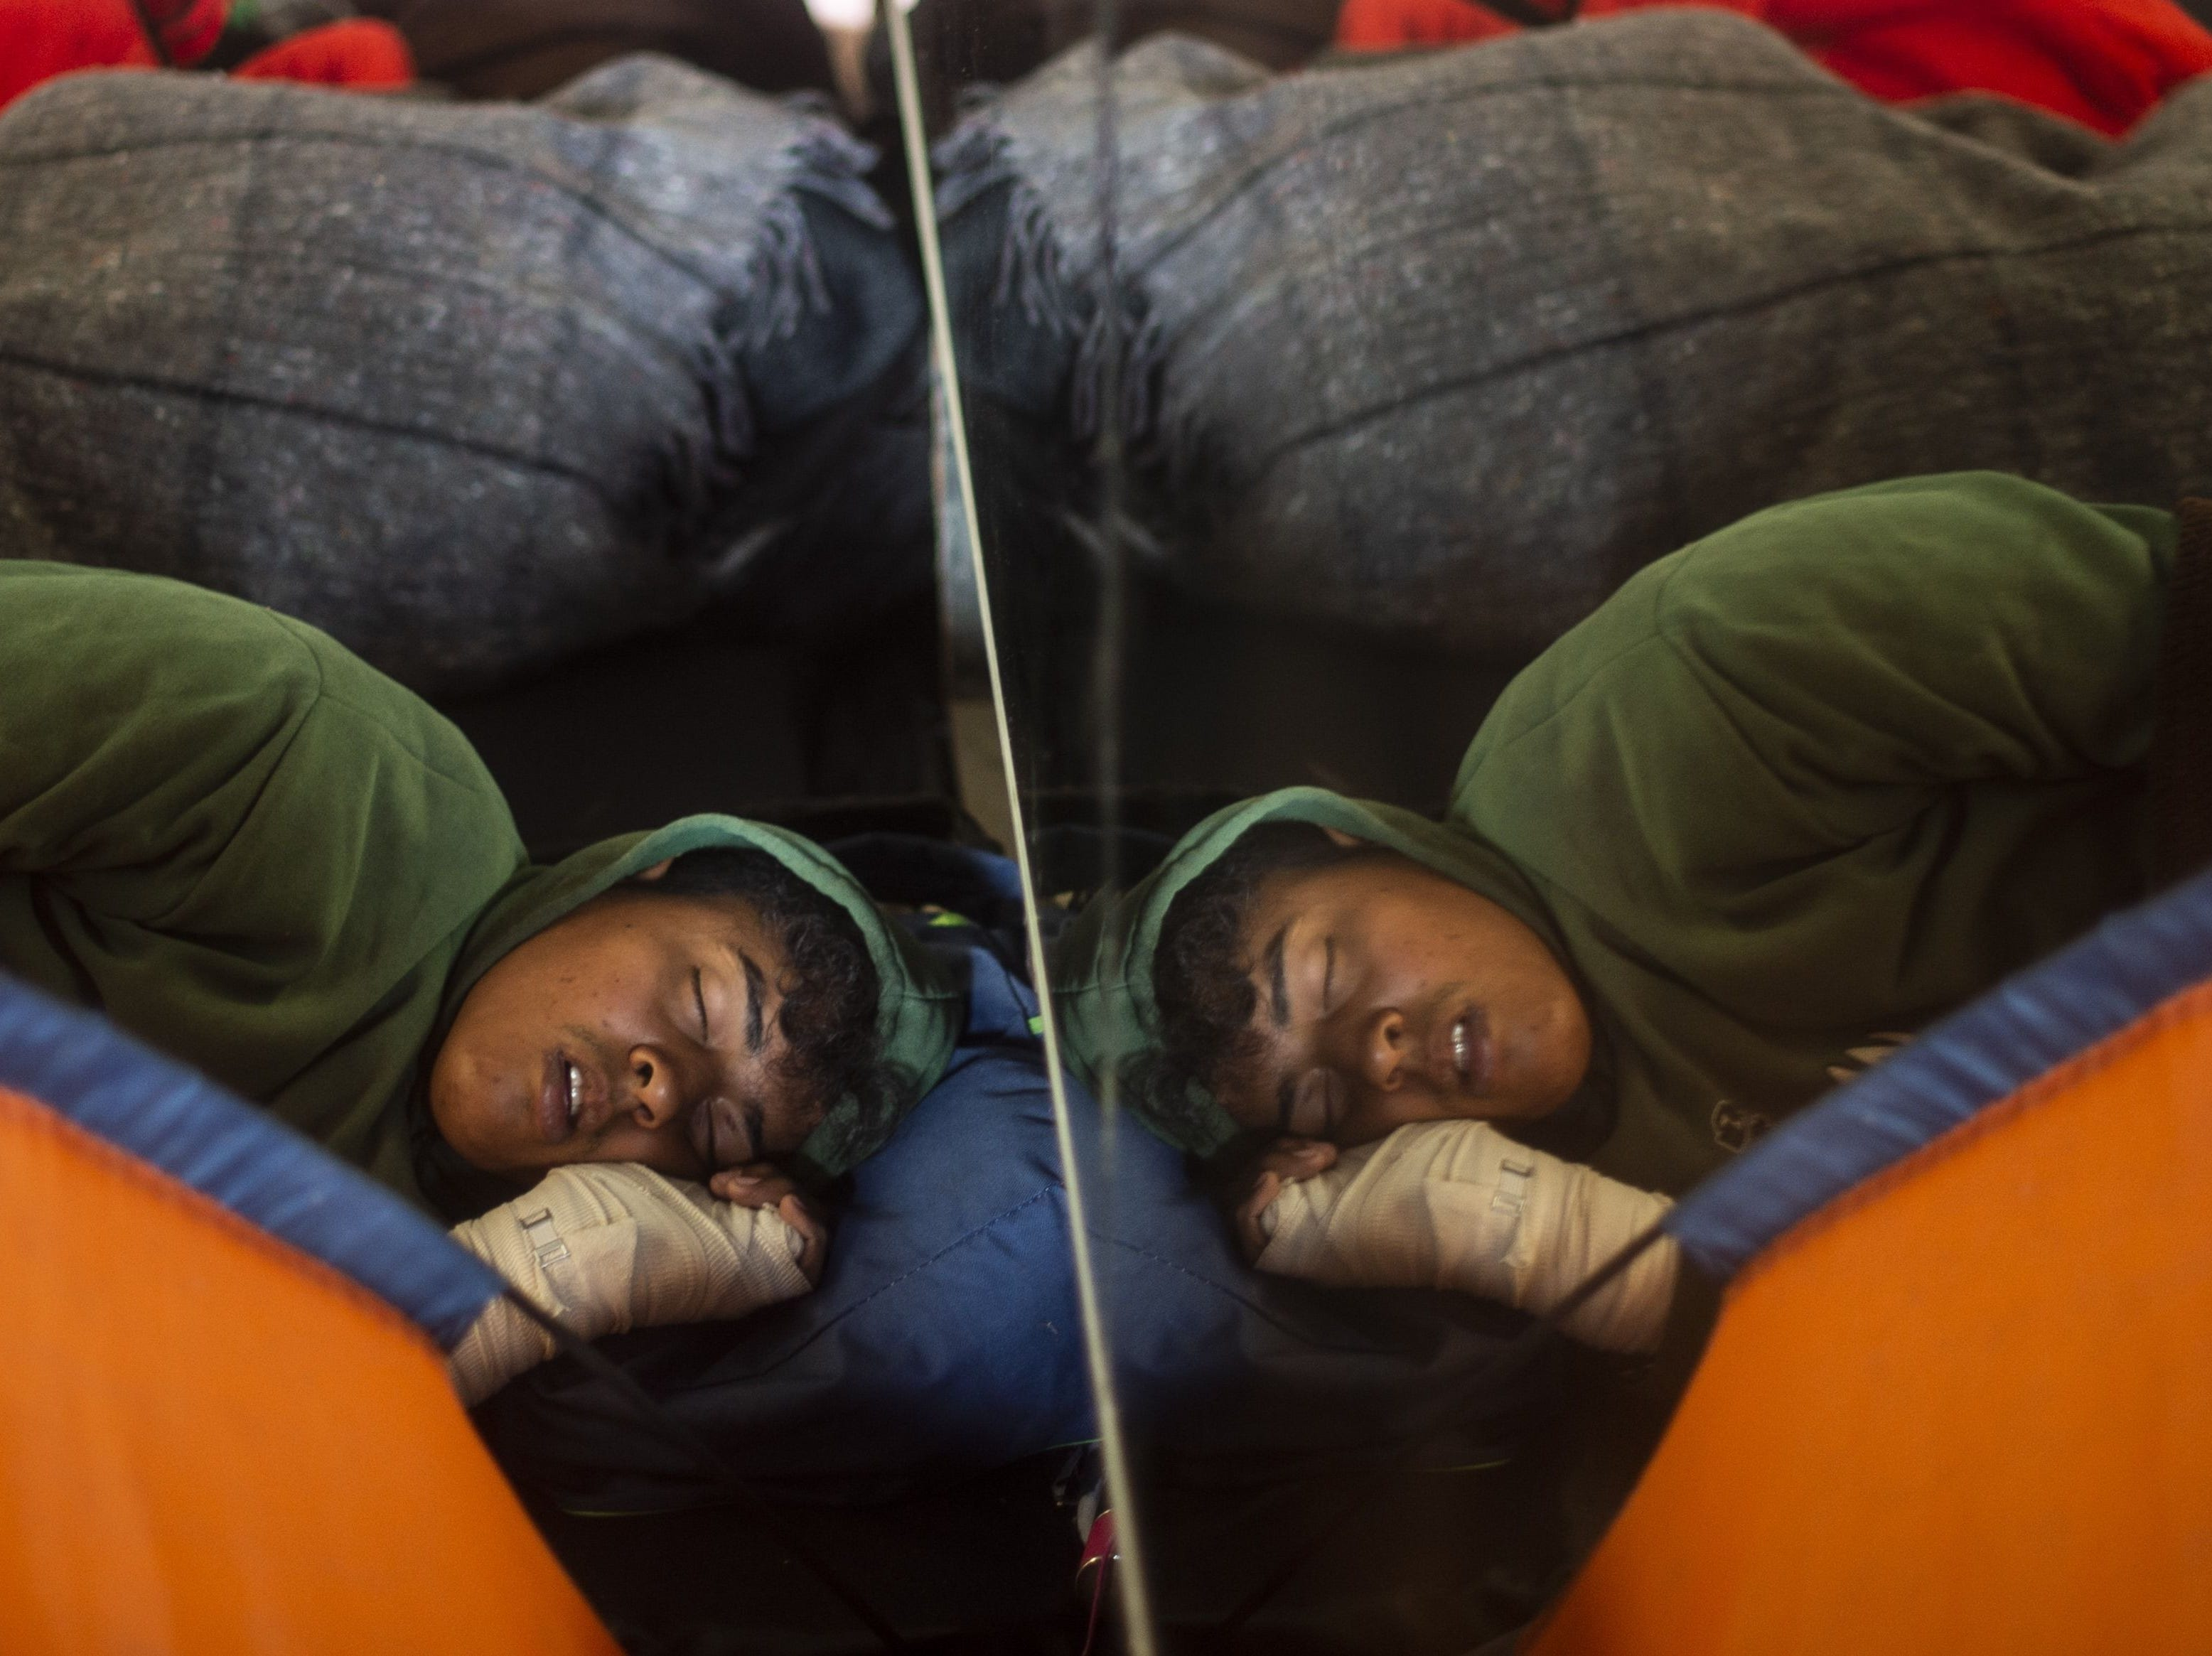 Central American migrants -mostly from Honduras- traveling in a caravan to the United States, rest after being relocated at a new temporary shelter in east Tijuana, Baja California State, Mexico, in the border with the US on Nov. 30, 2018.